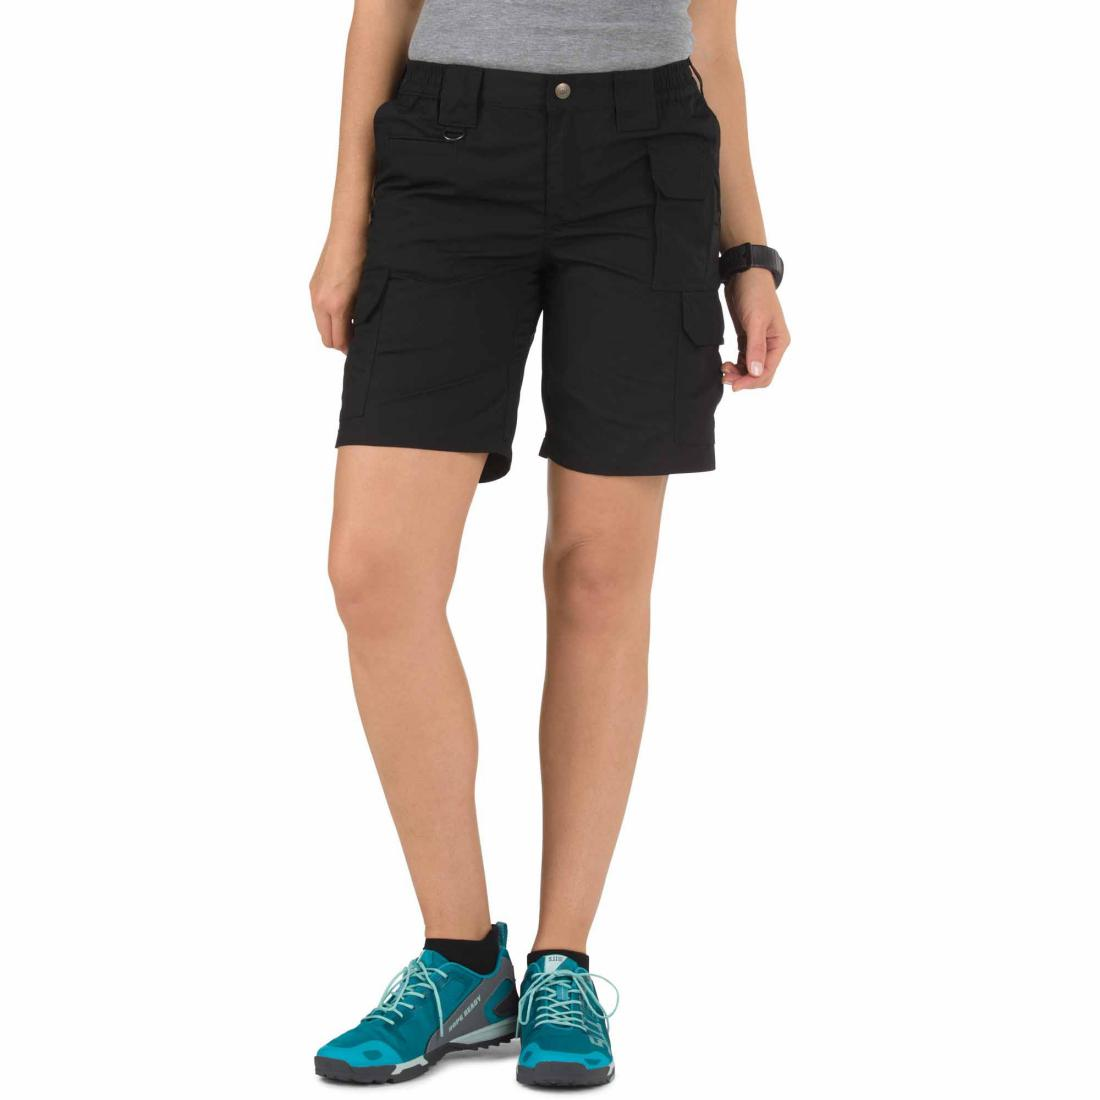 5.11 Tactical 63071 Women's Taclite Pro Short Black